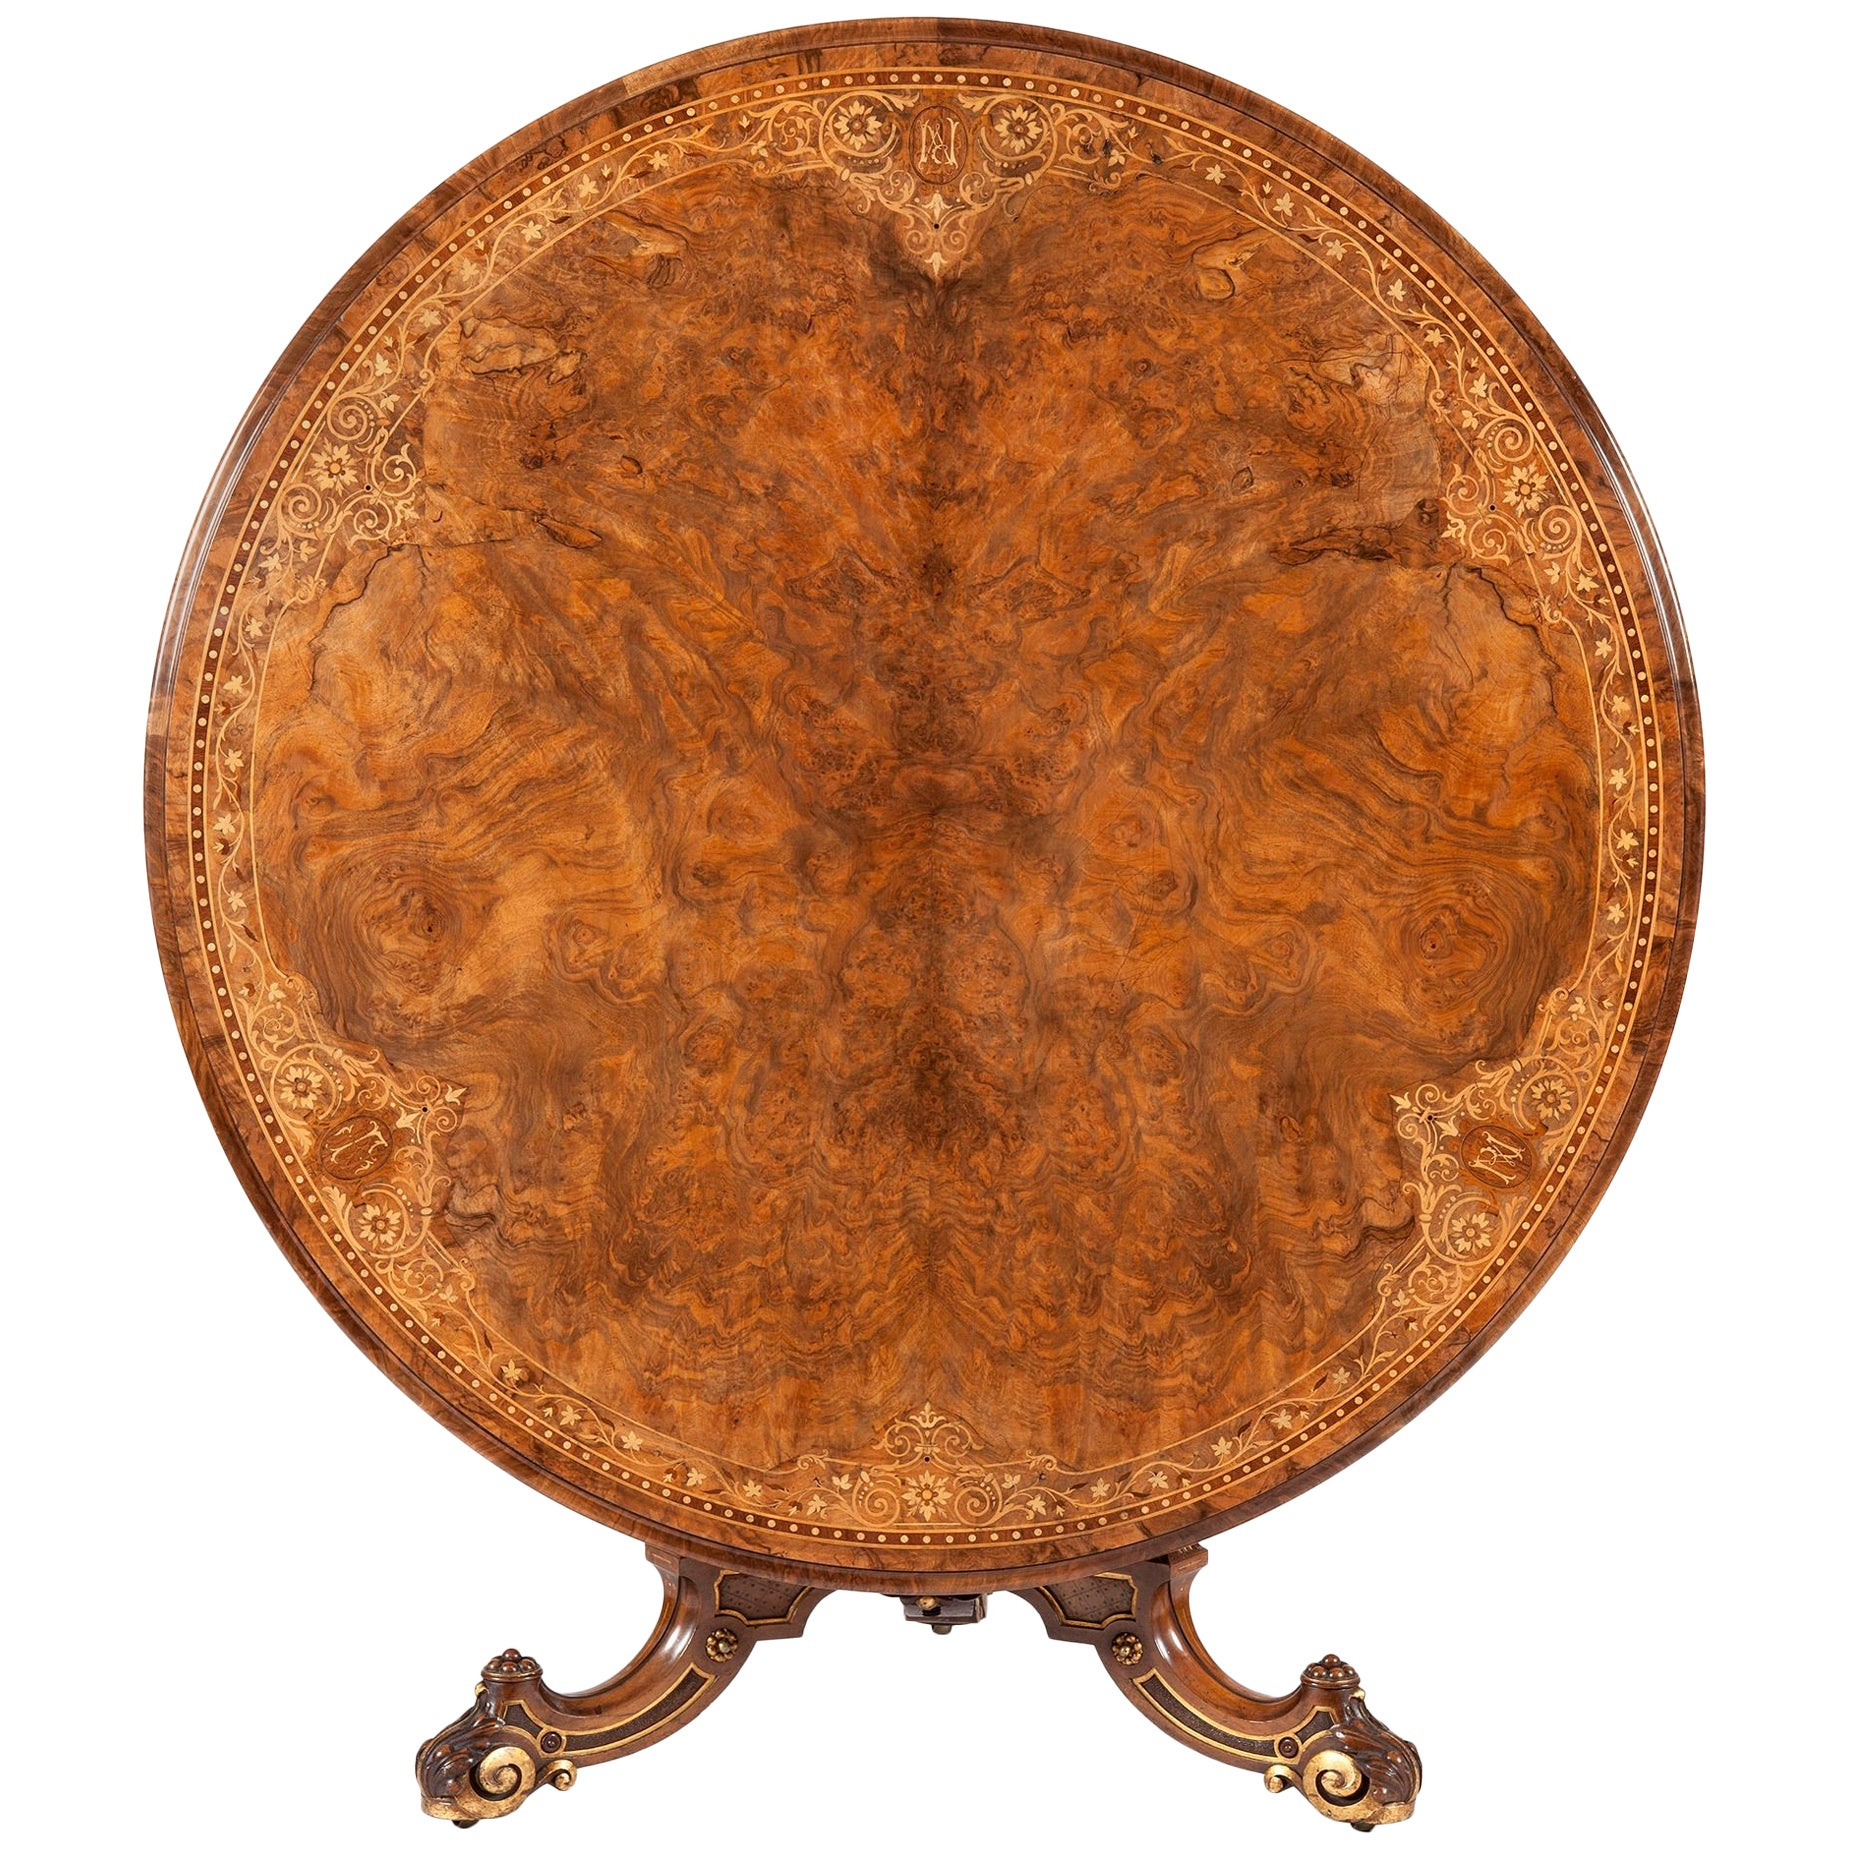 19th Century English Walnut with Marquetry Center Table